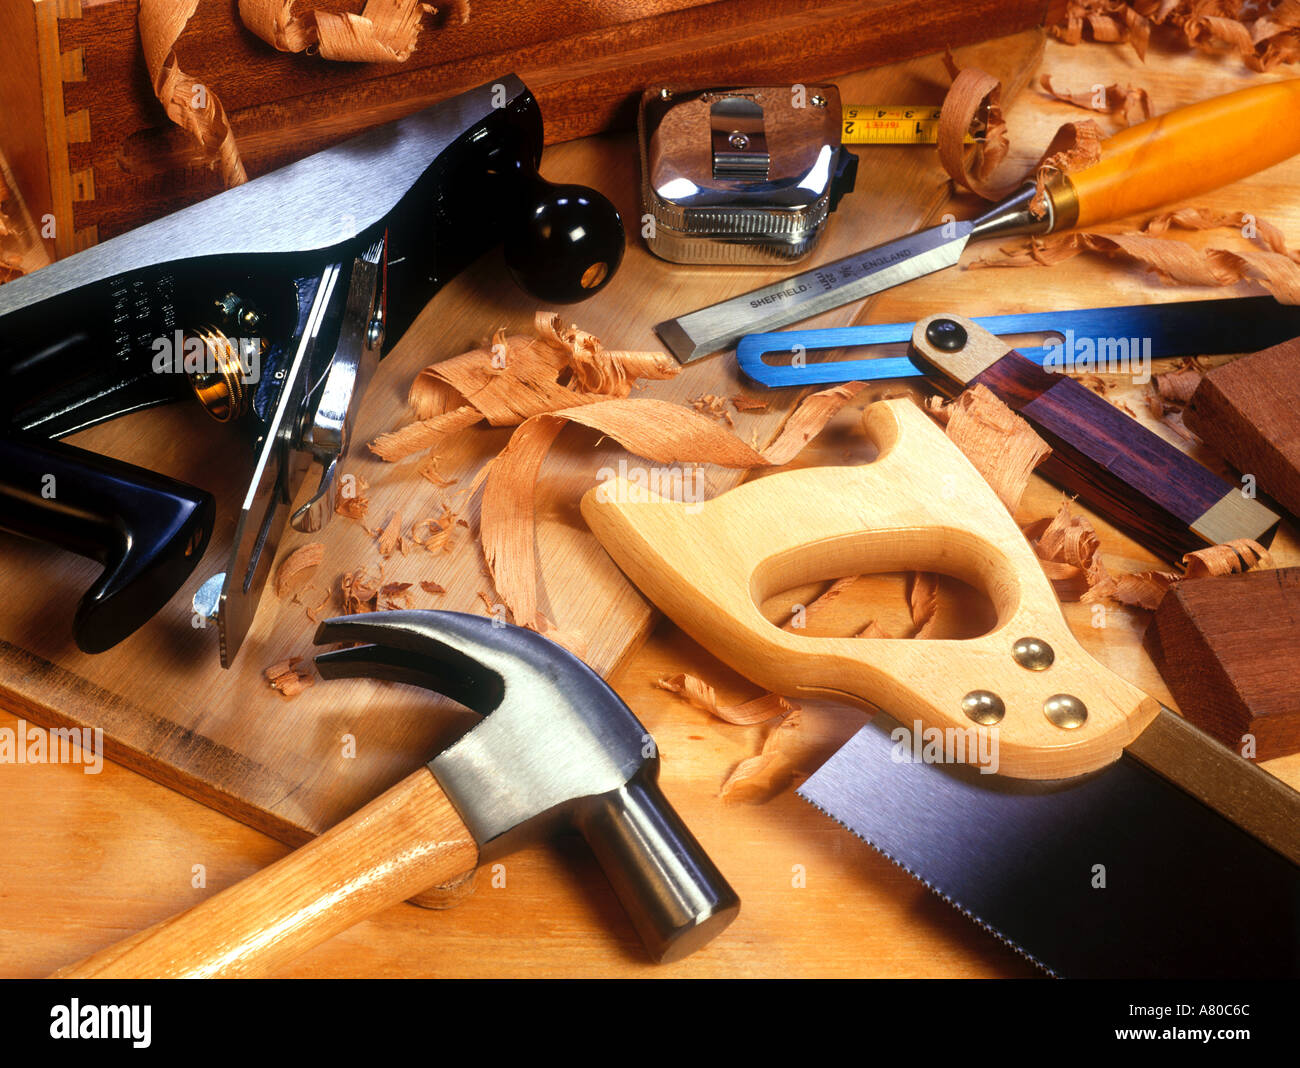 collection of various woodworking tools - Stock Image